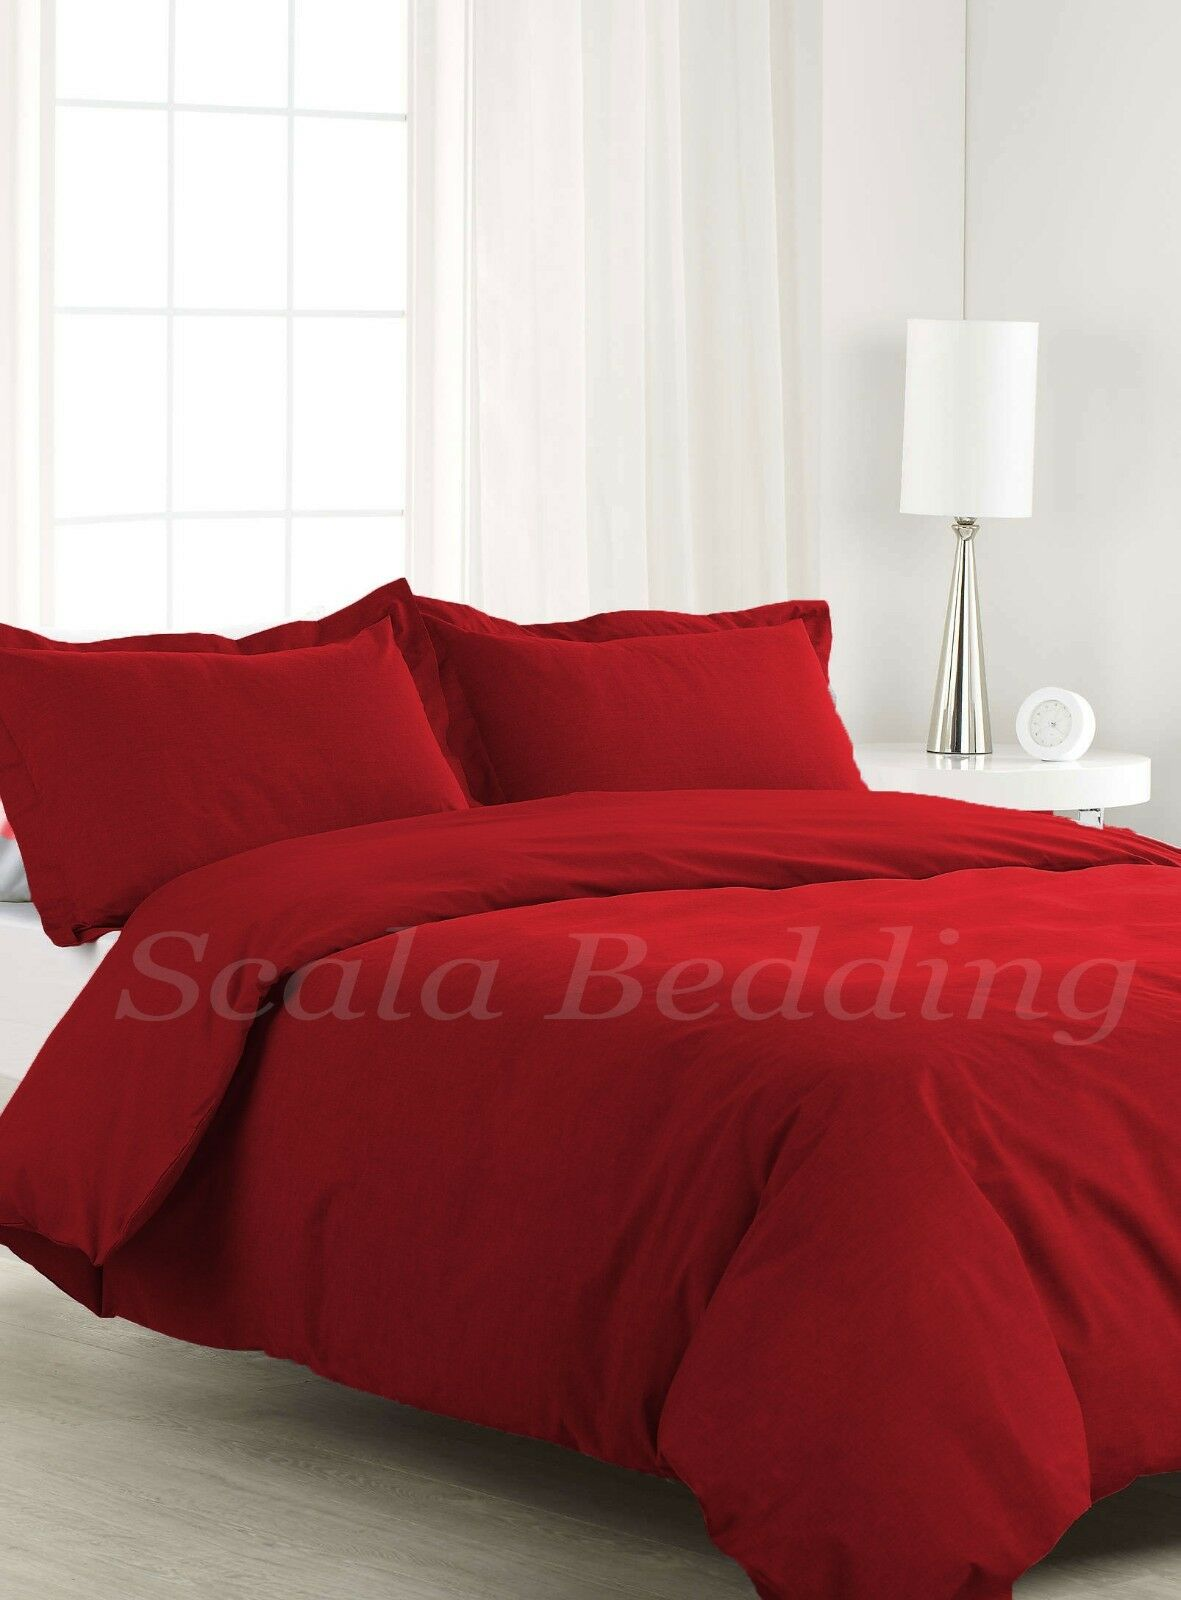 King Calking Size New Solid Duvet cover set 800 TC Egyptian Cotton All colors